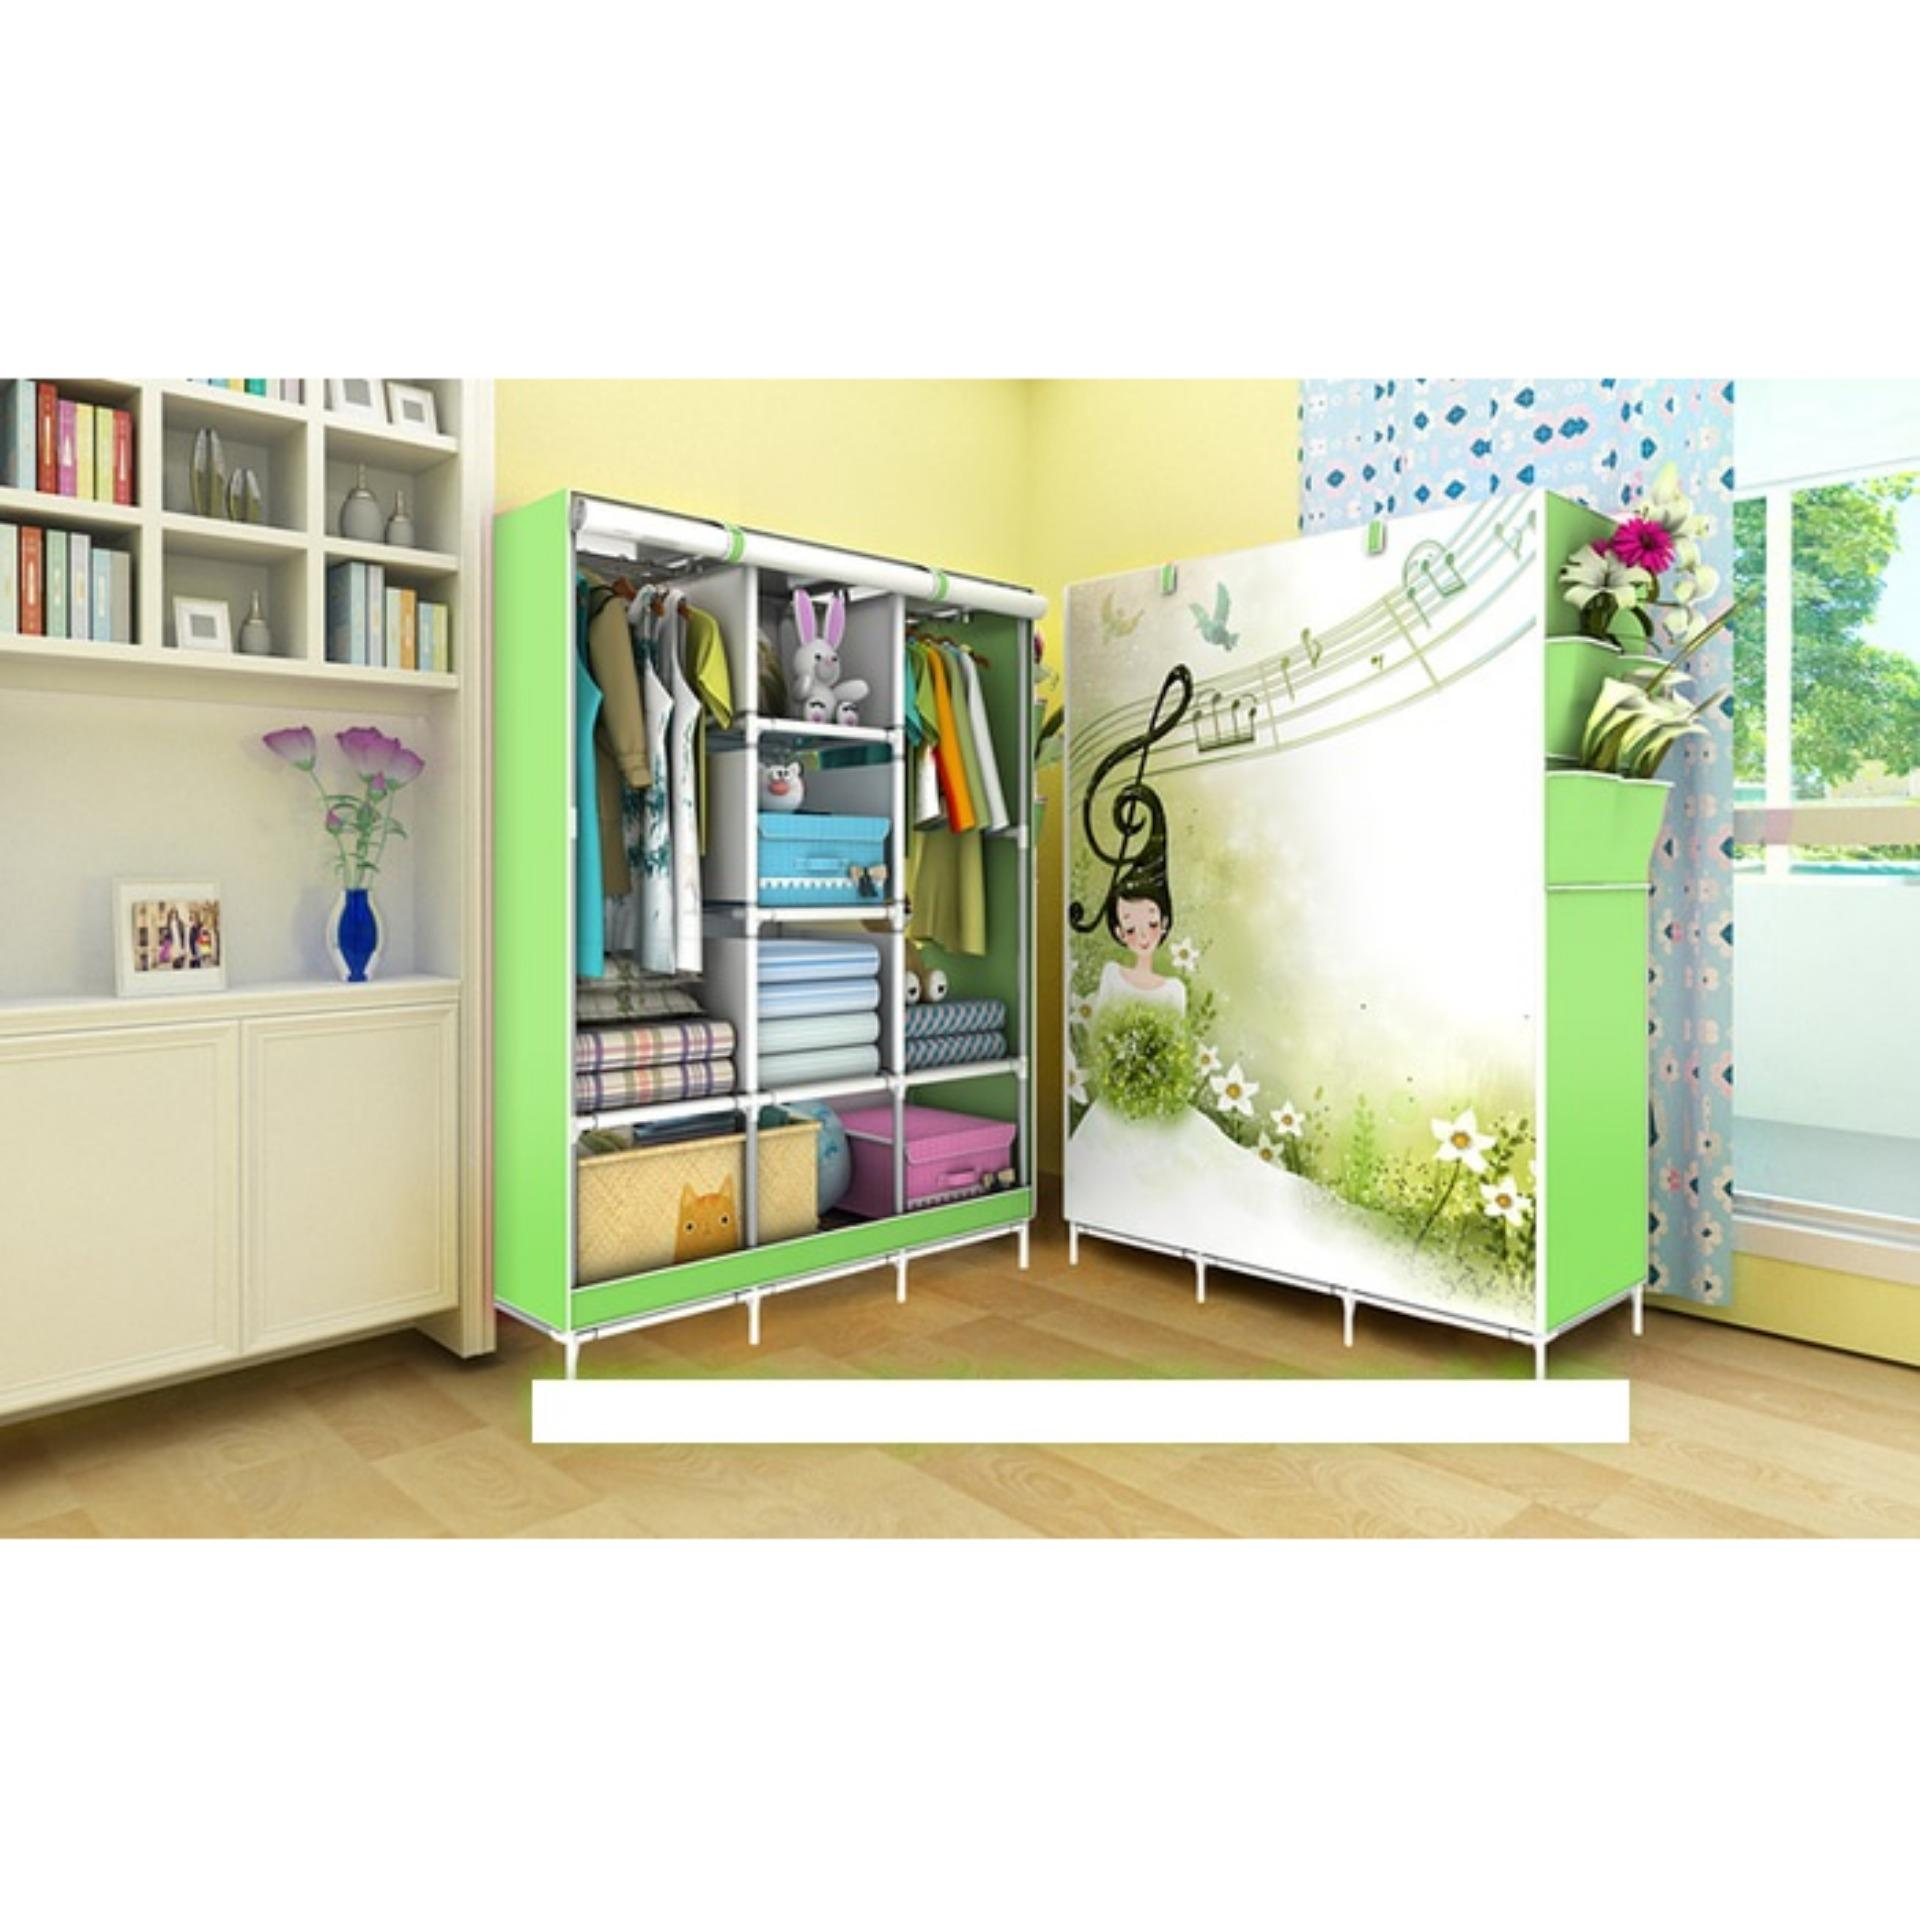 LARS - 08 MUSIC Lemari pakaian Multifunction Wardrobe with cover rak pakaian